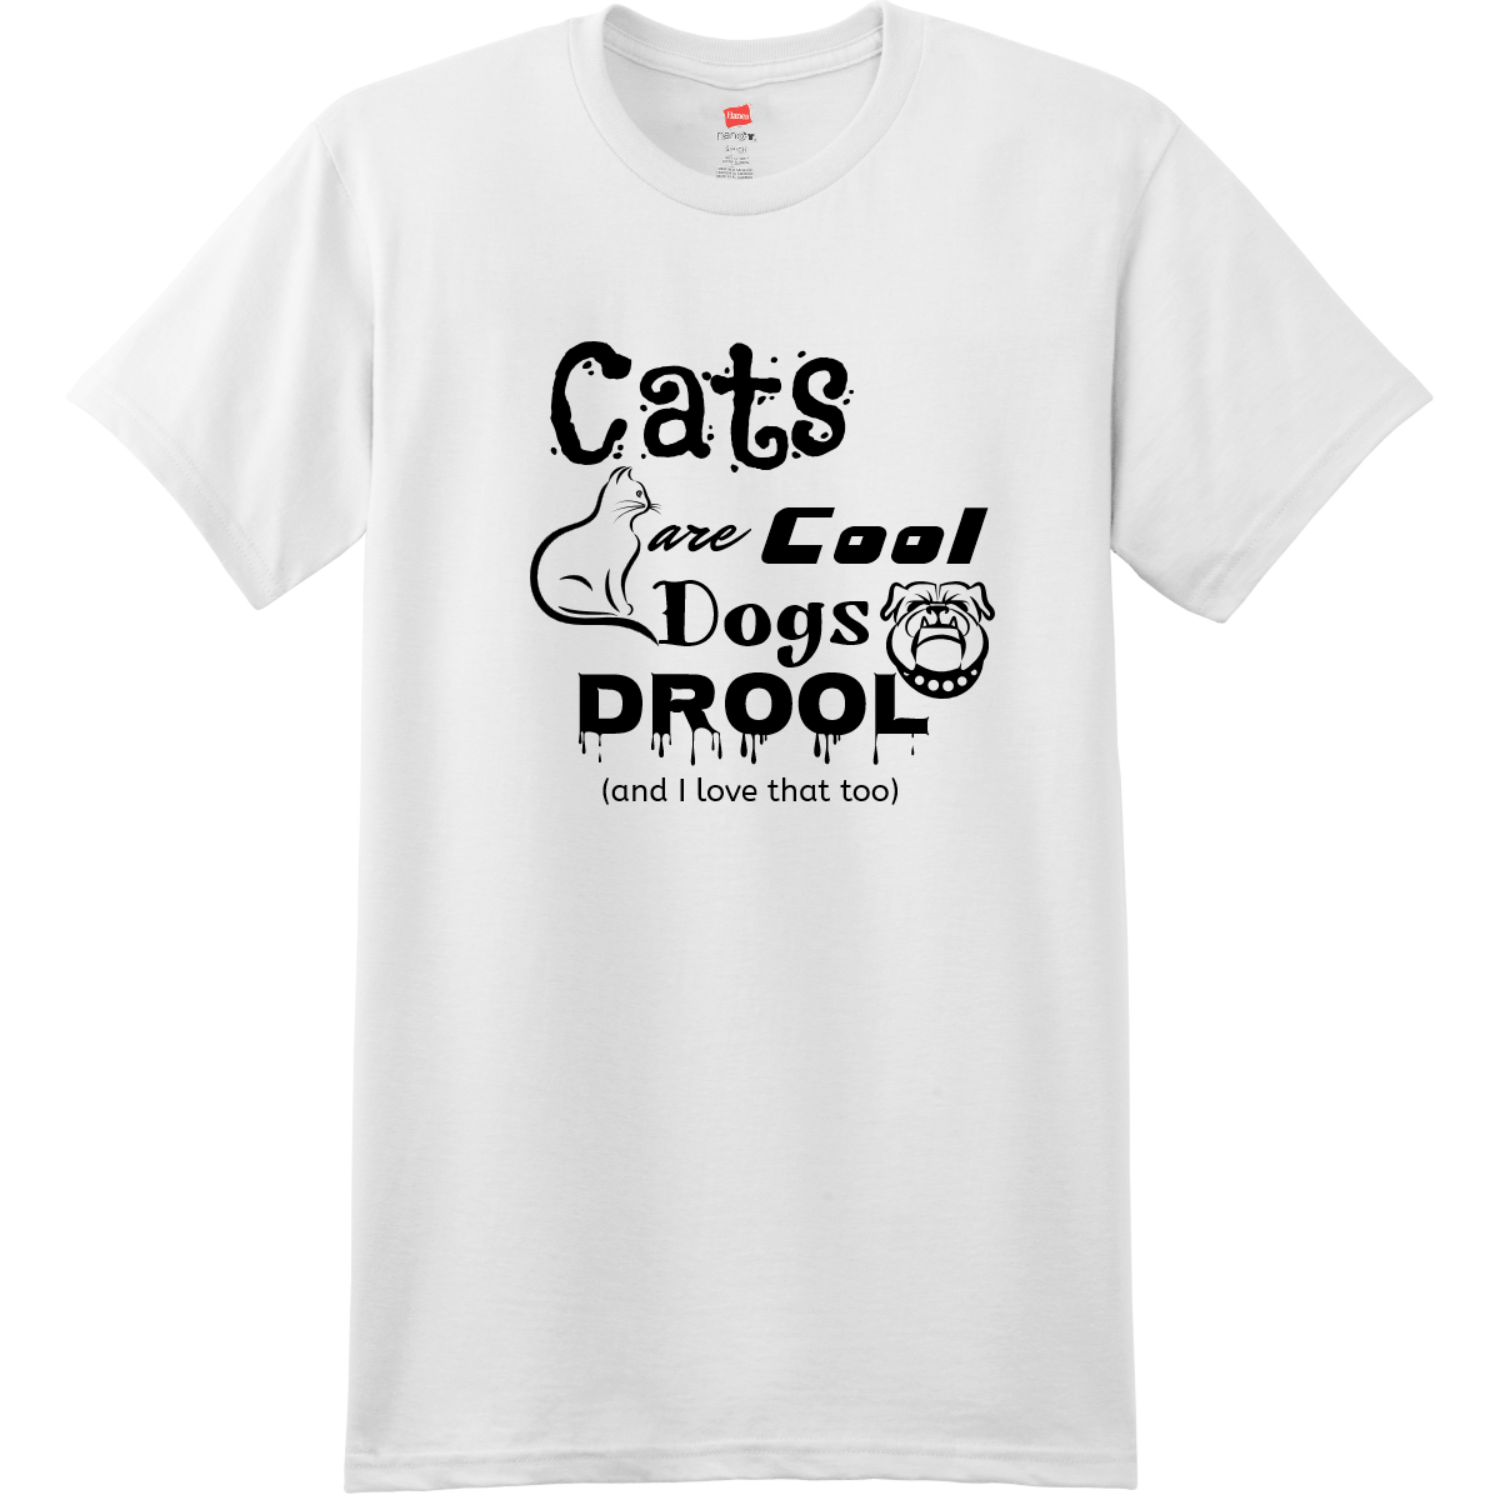 Cats Are Cool Dogs Drool T Shirt White Hanes Nano 4980 Ringspun Cotton T Shirt